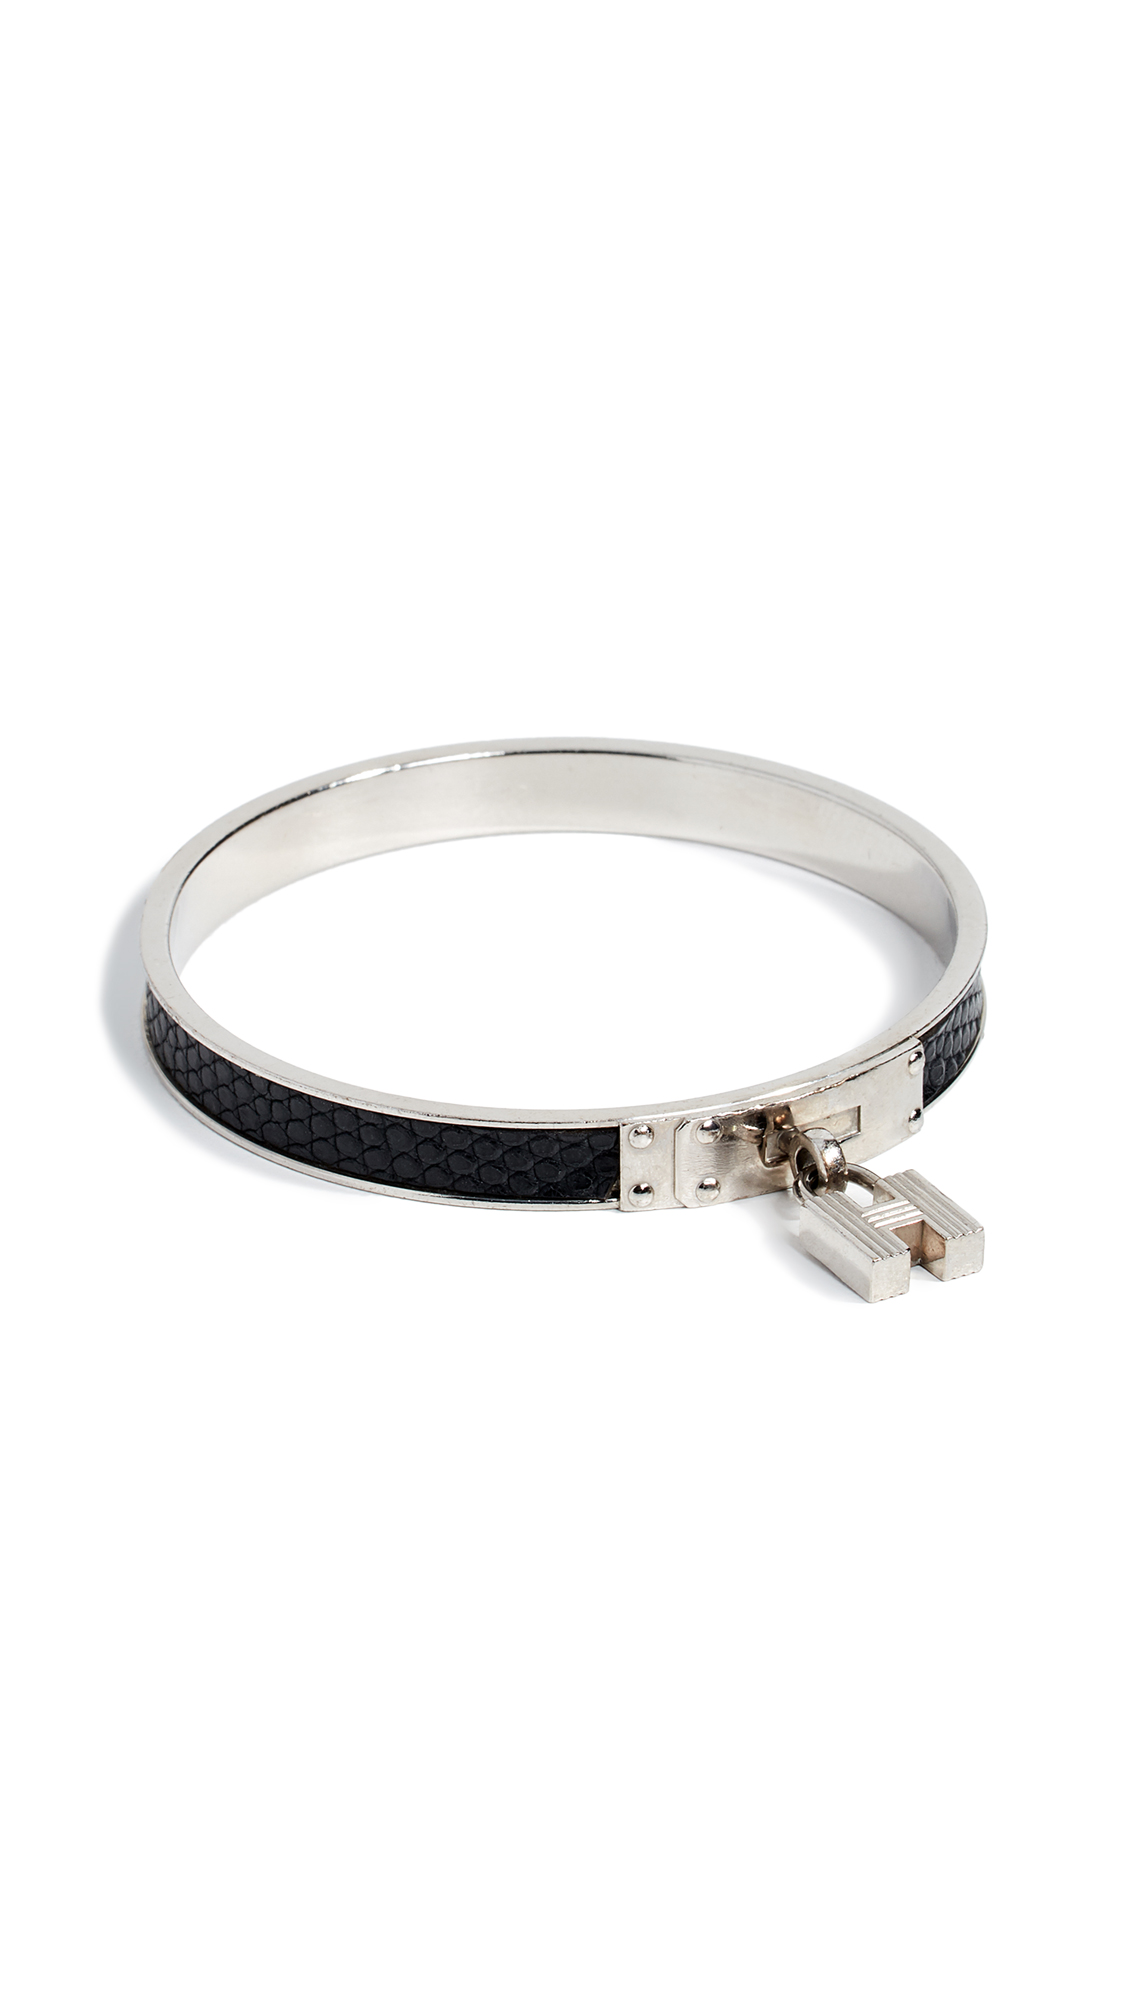 WHAT GOES AROUND COMES AROUND Hermes Black Silver Kelly Bangle